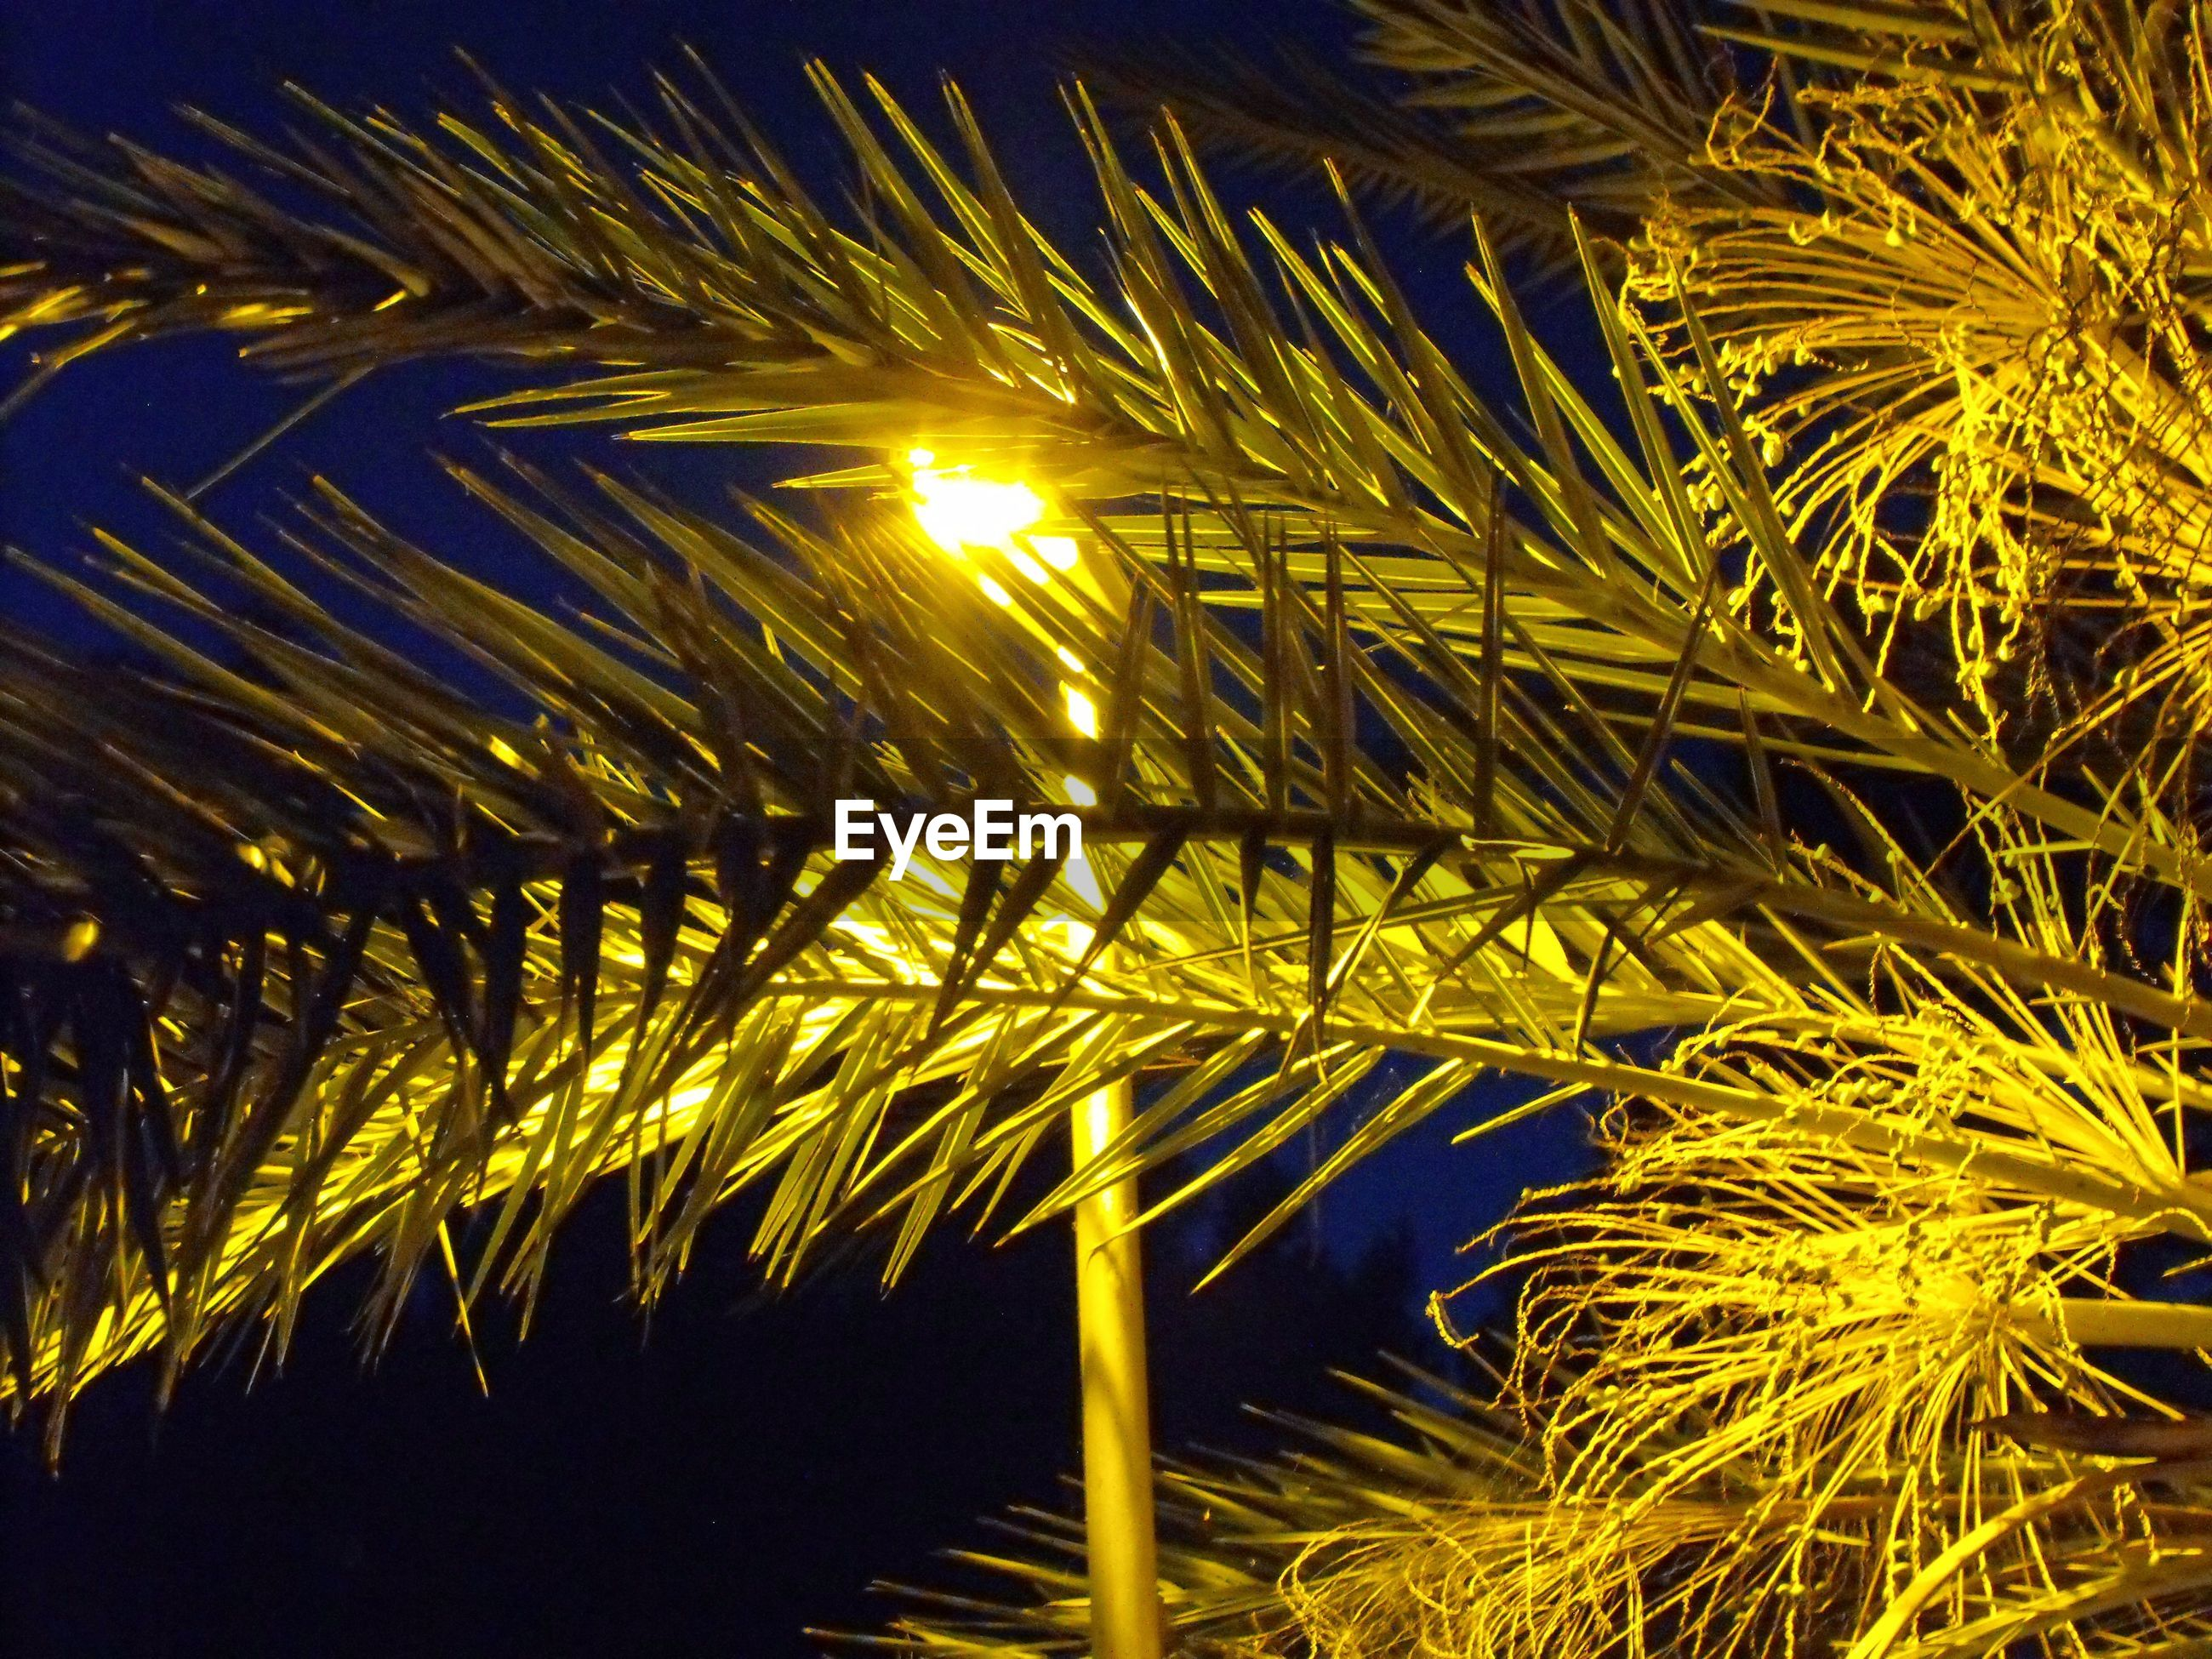 Low angle view of palm tree and illuminated street light at night